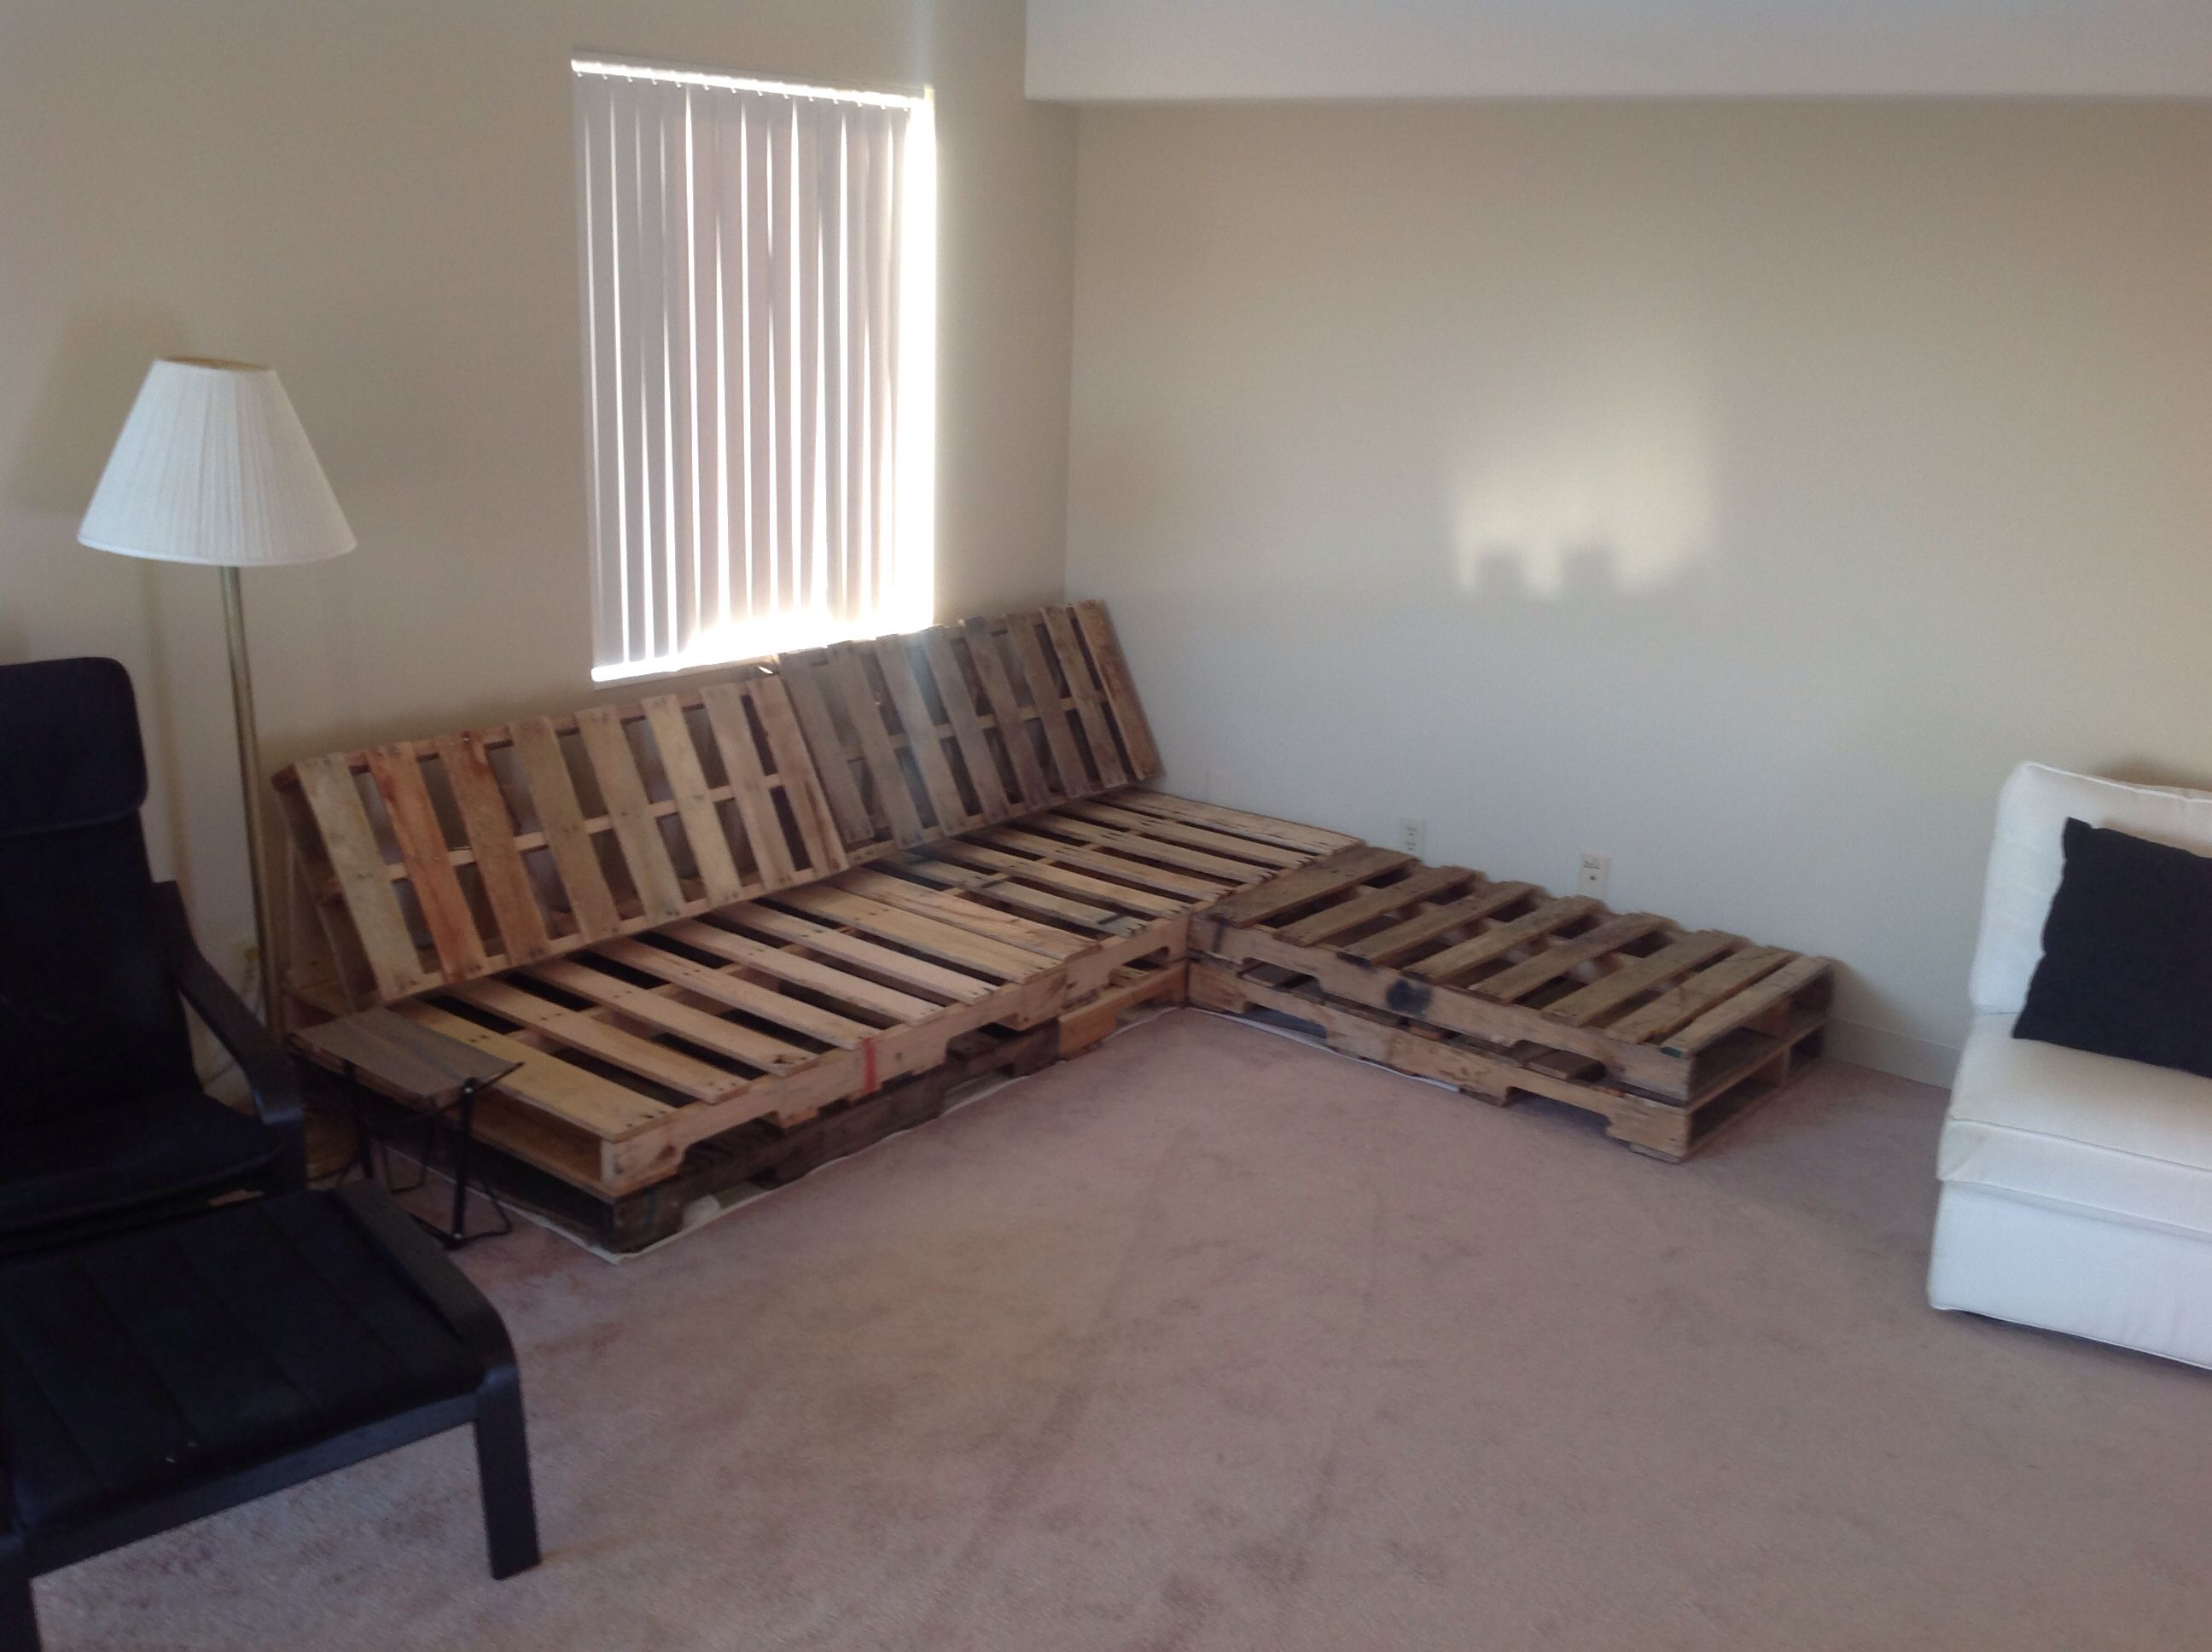 Diy Sofa From Pallets Next Michigan Size Pallet Couch With Chaise Lounge Cushions Are In